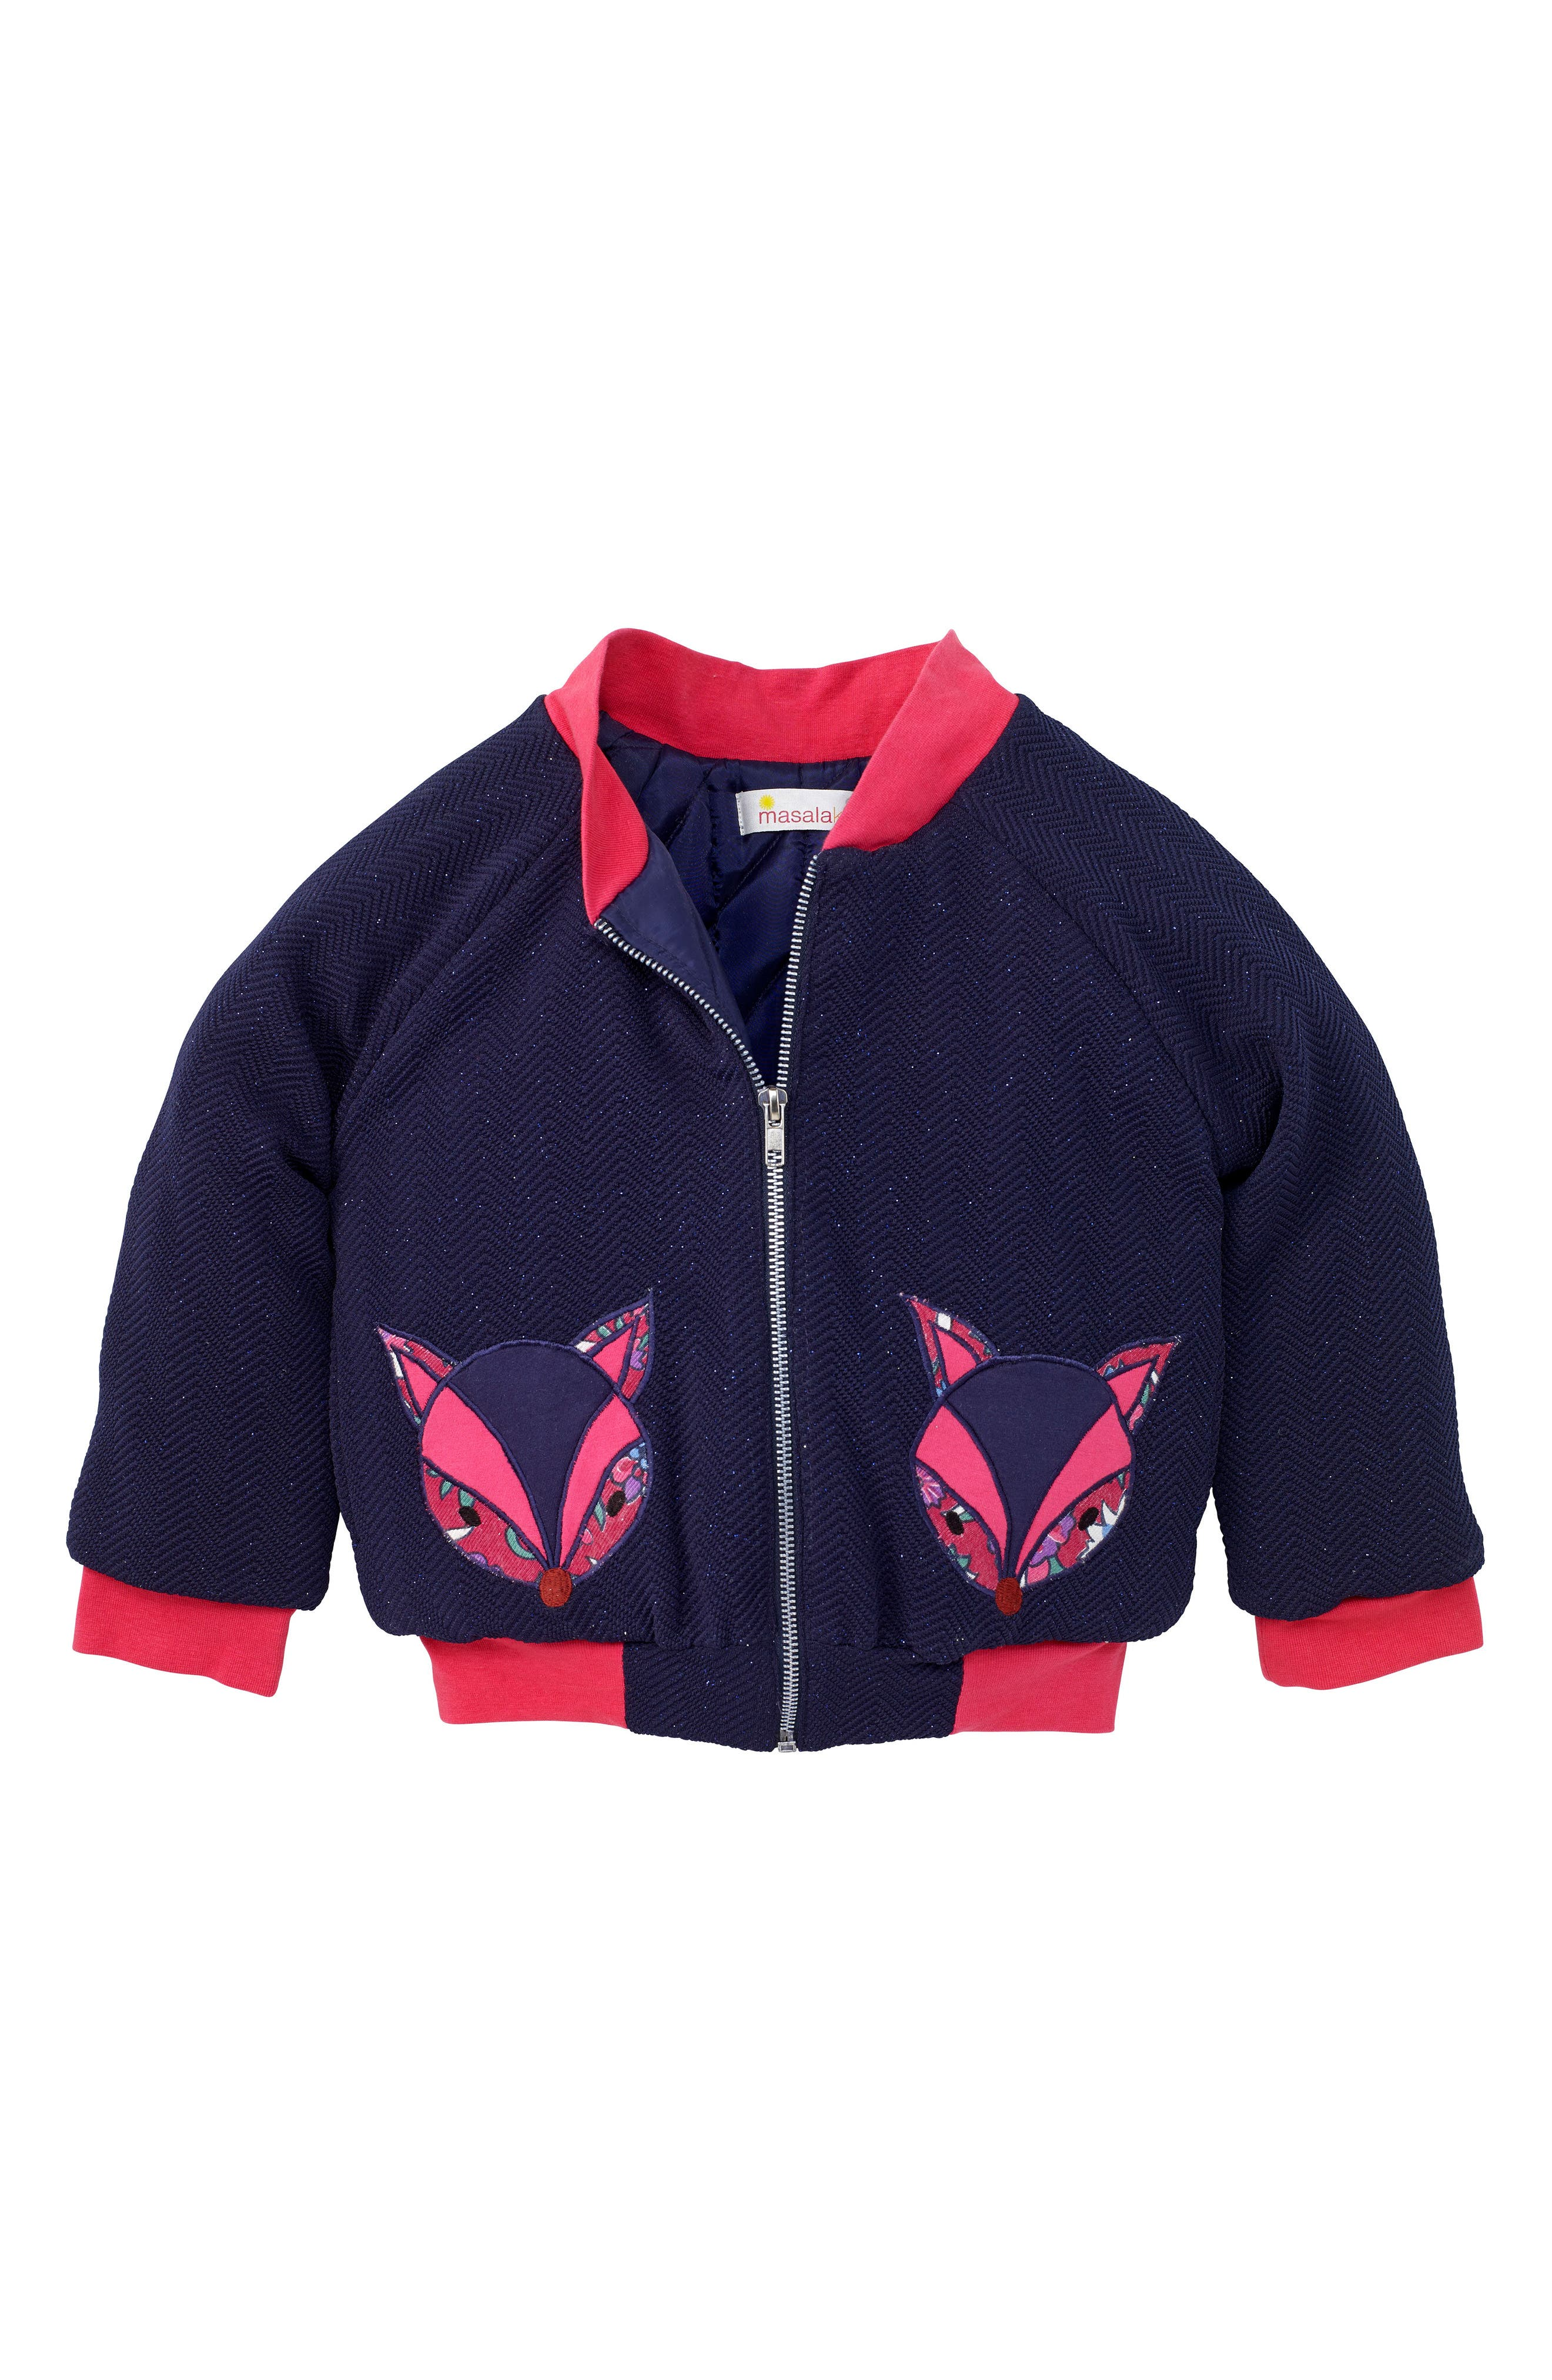 Foxy Bomber Jacket,                         Main,                         color, Navy